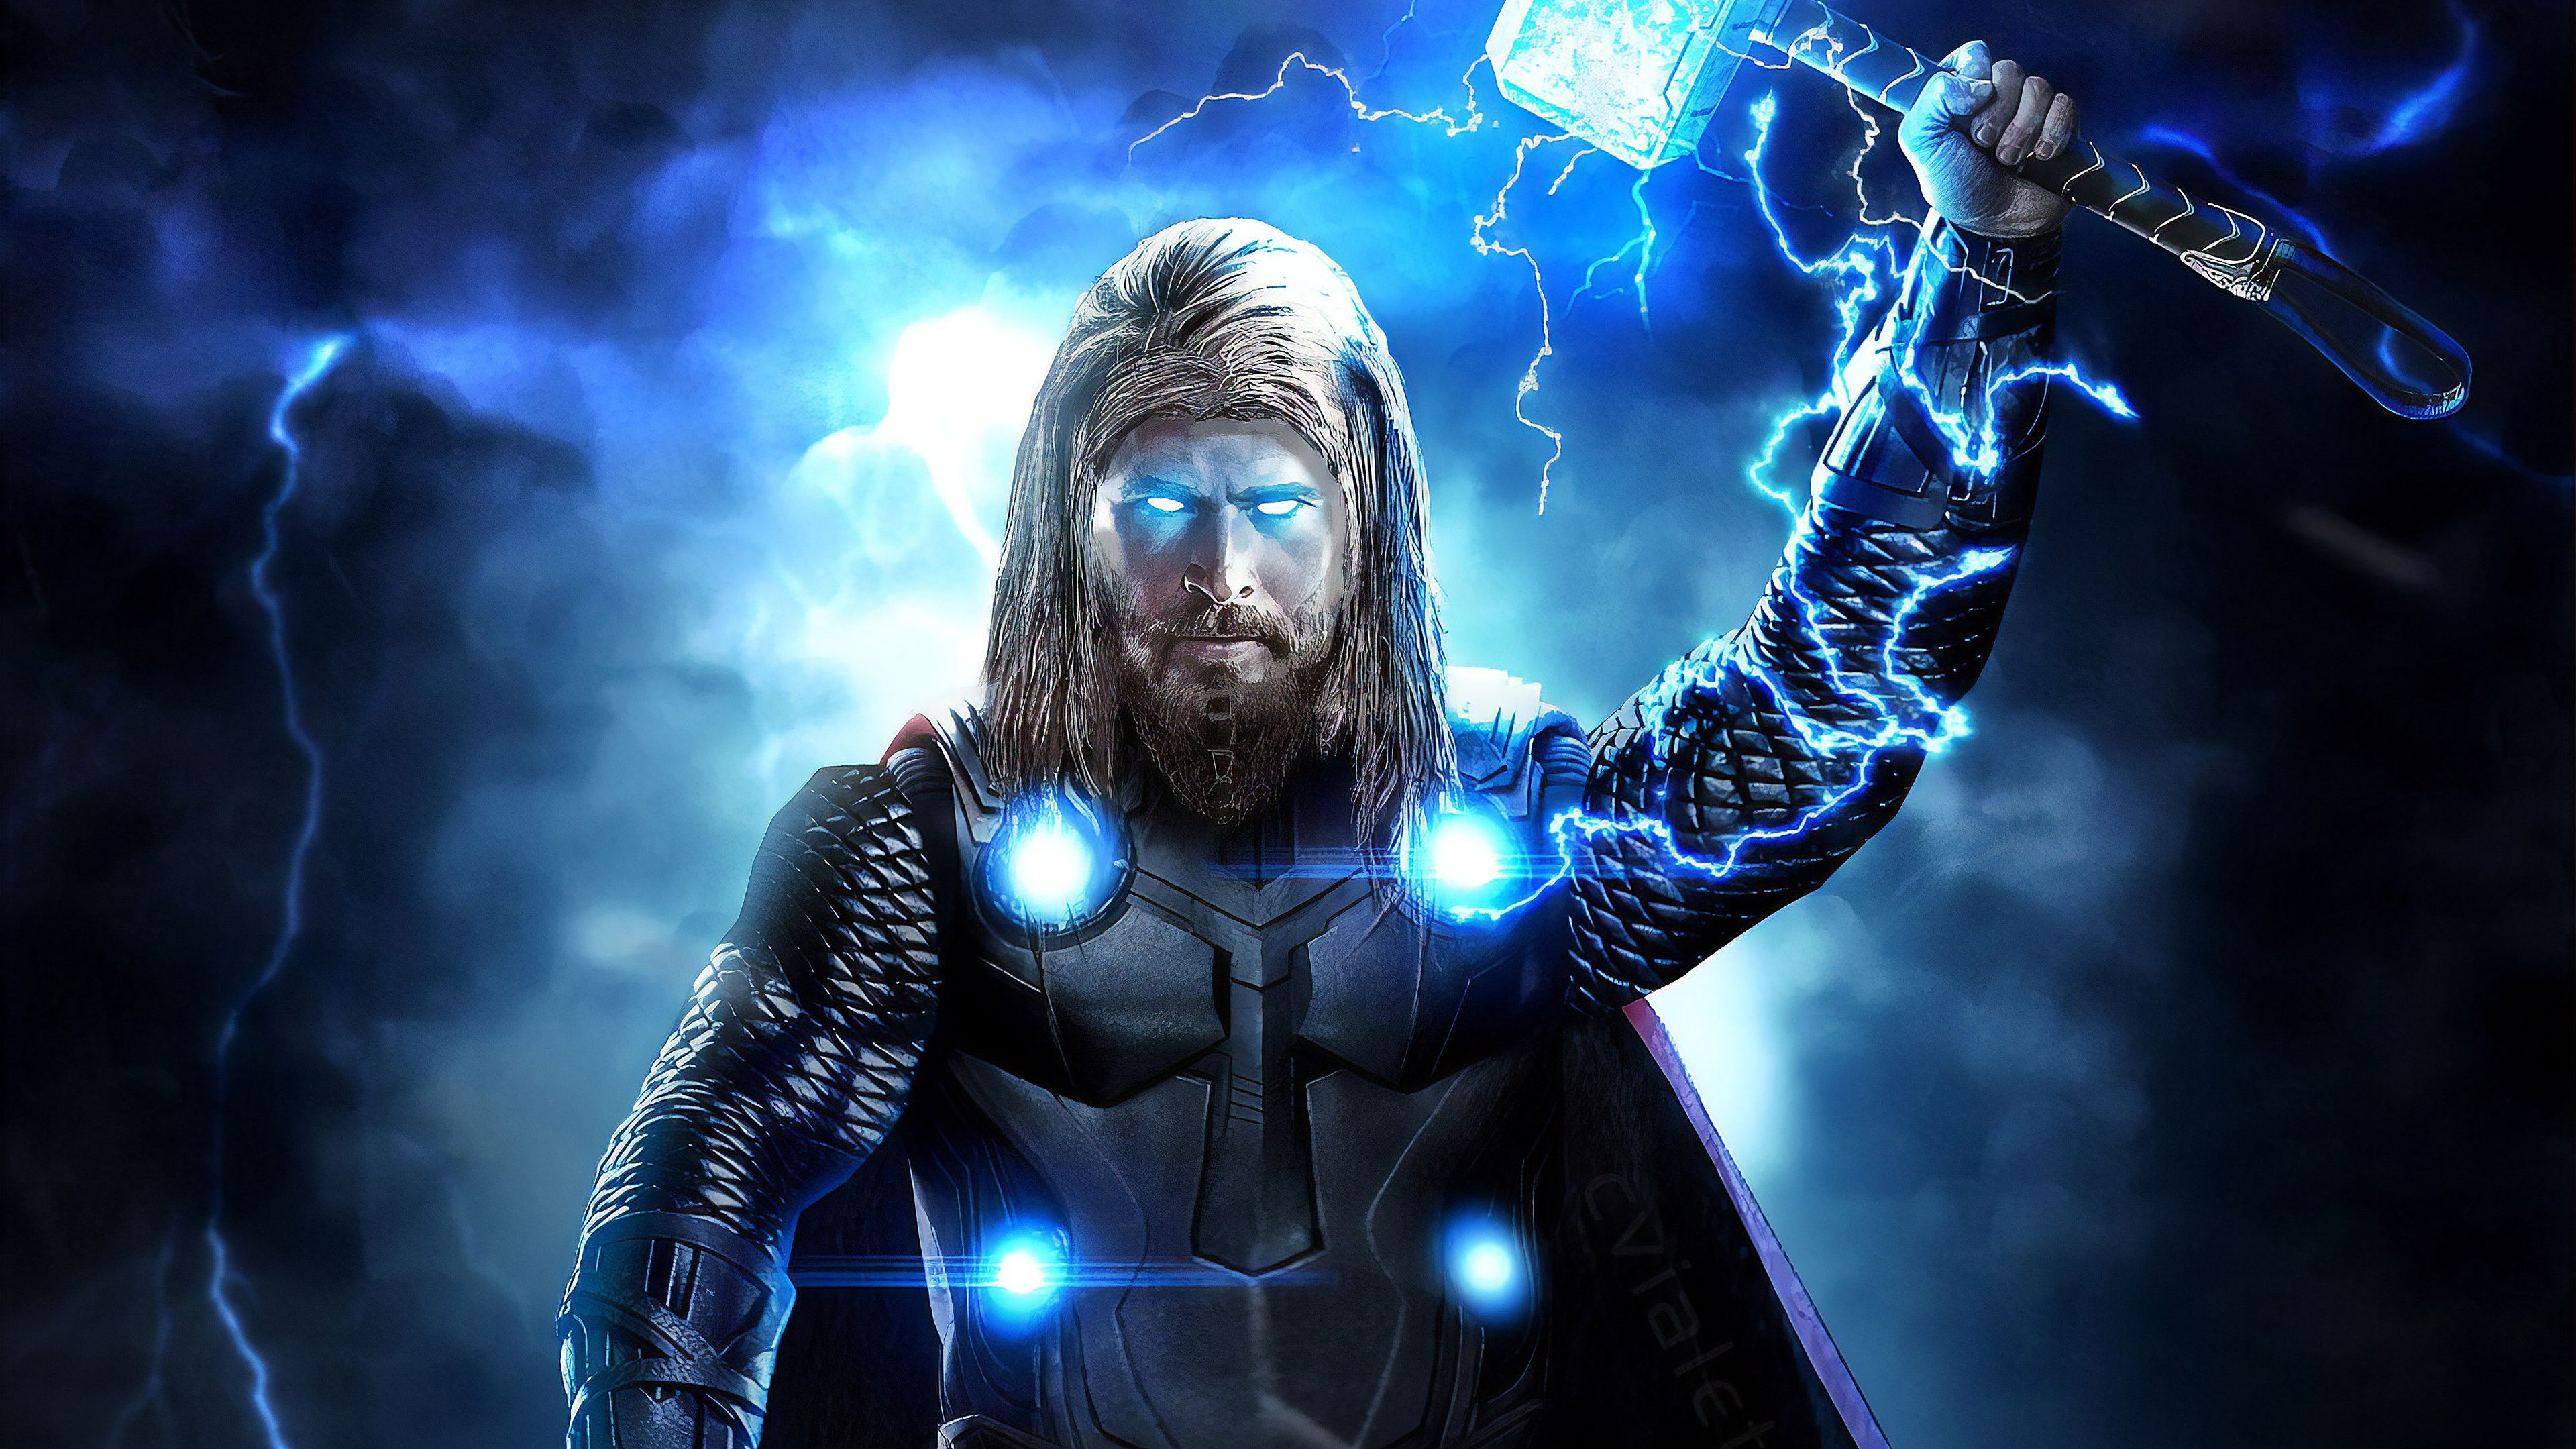 Thor Avengers Endgame Full Power, HD Superheroes, 4k Wallpapers, Image, Backgrounds, Photos and Pictures